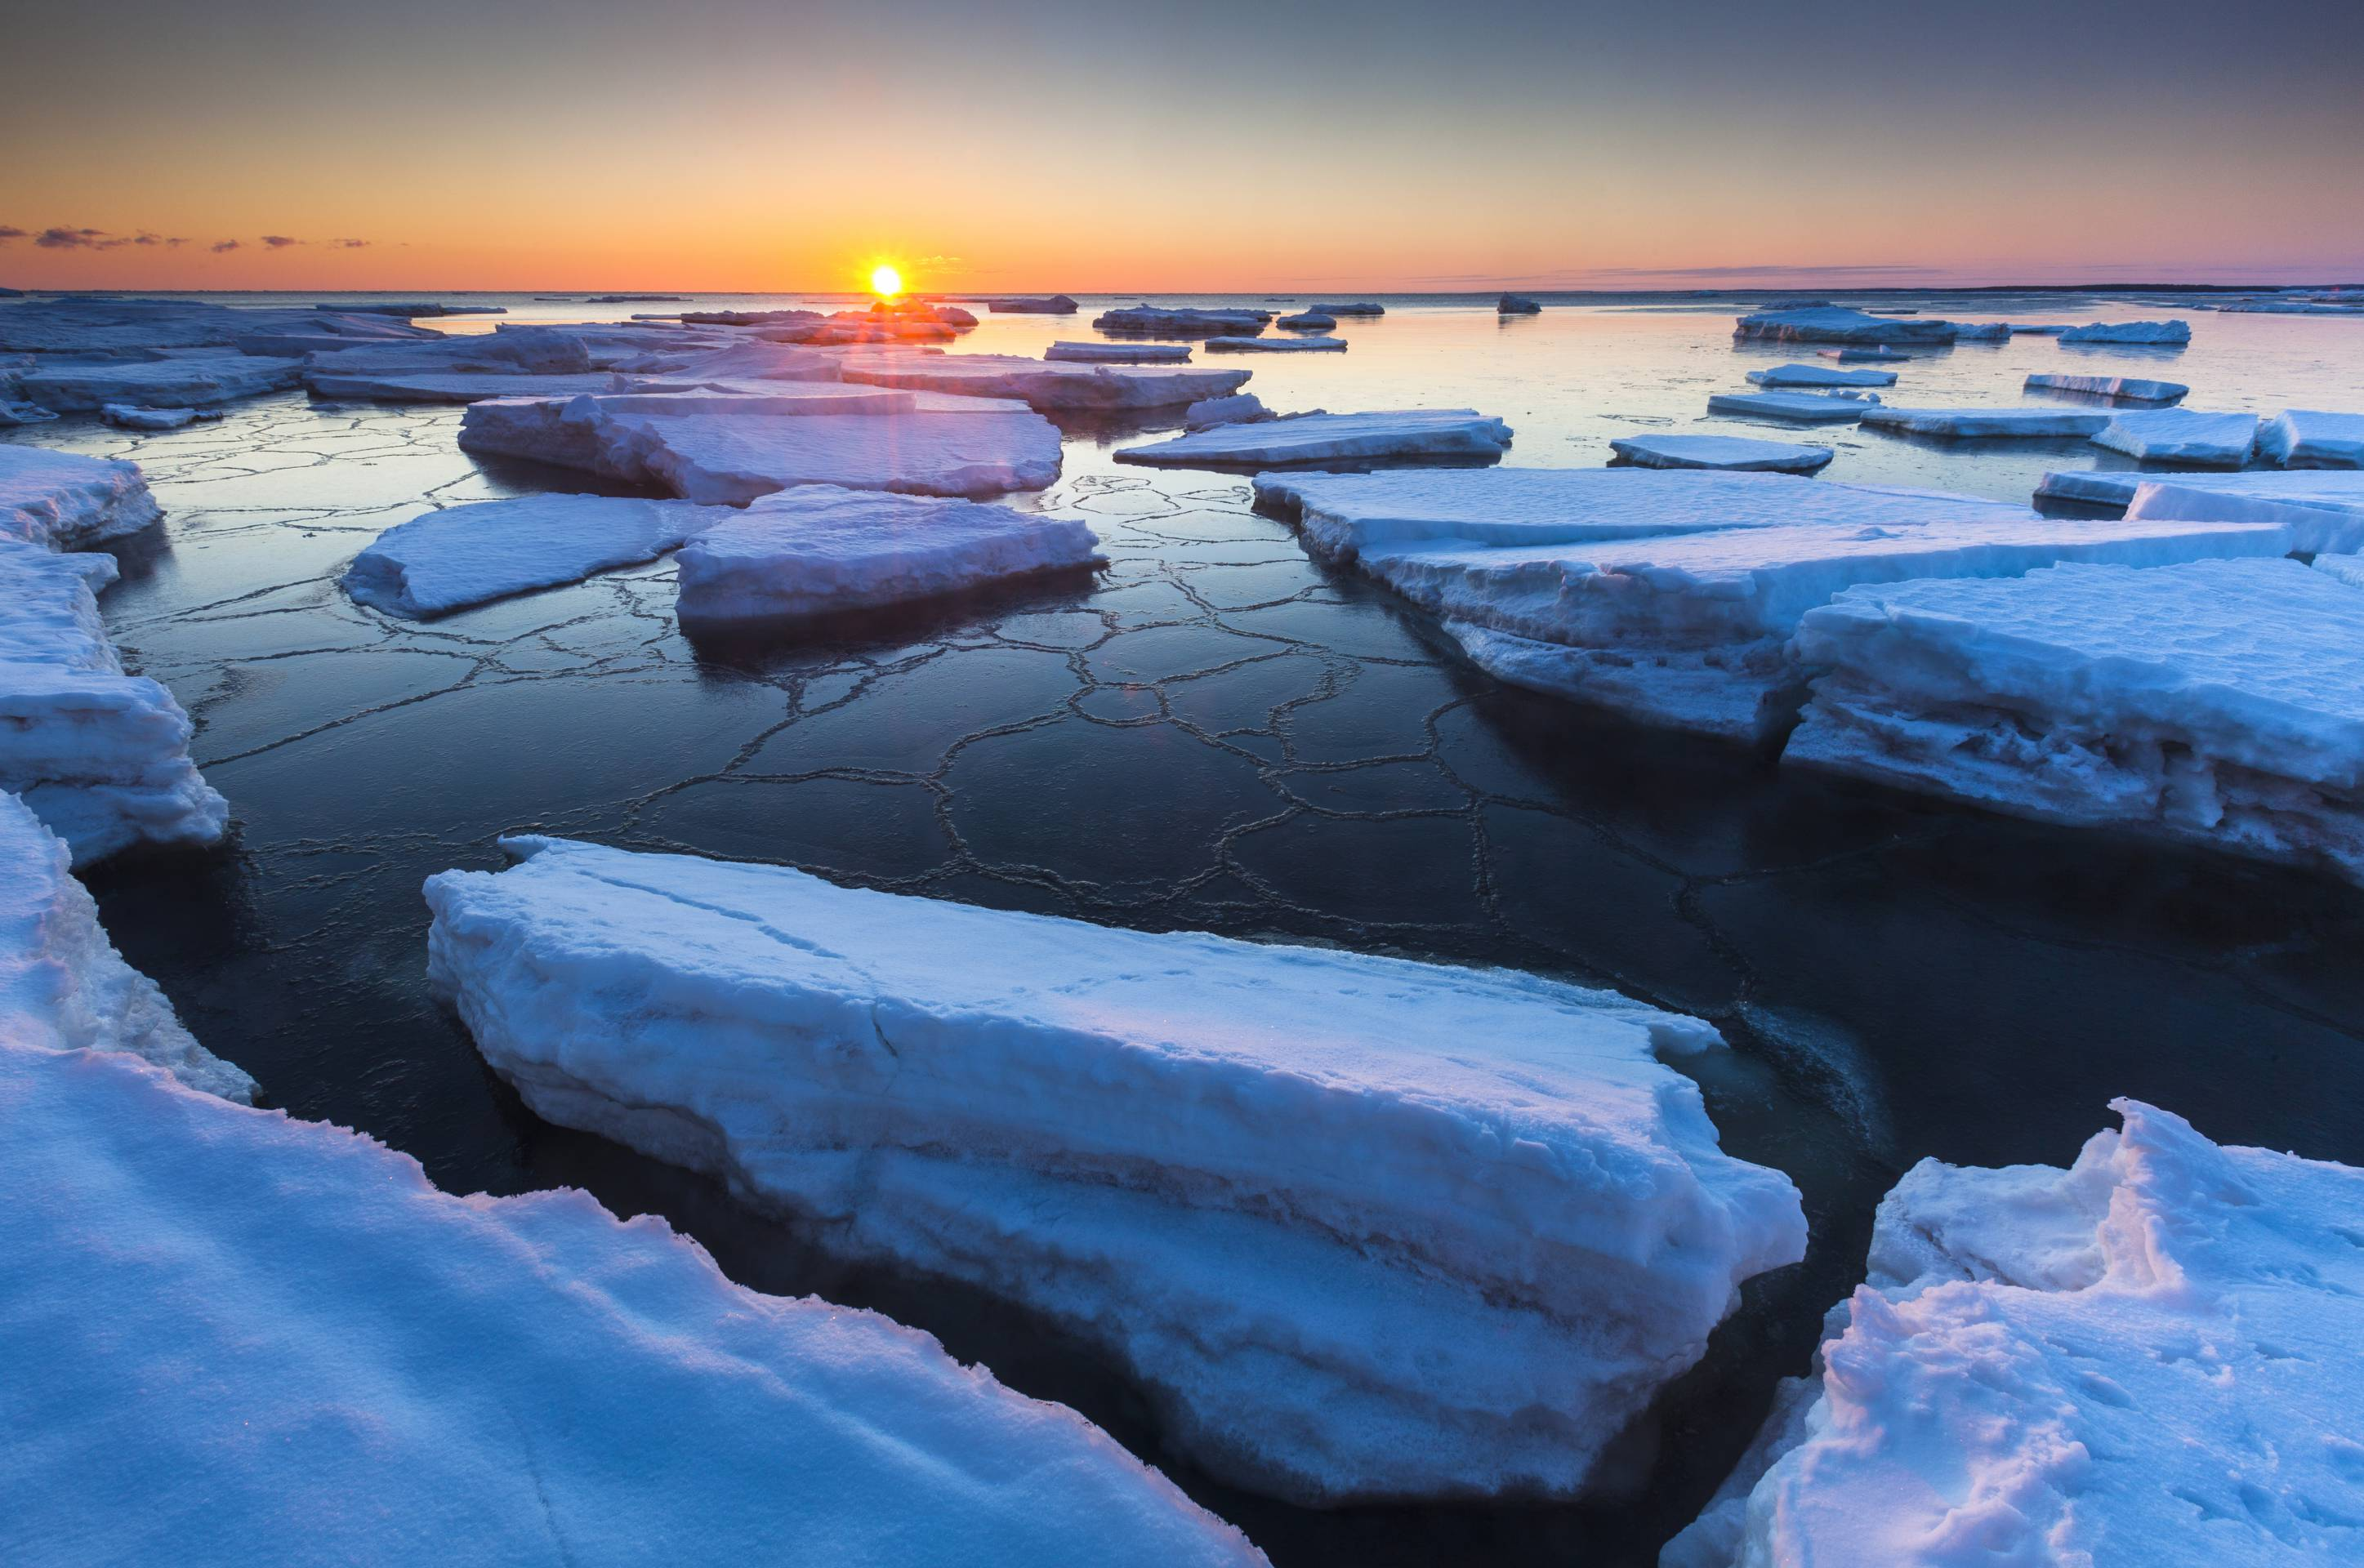 spring break-up of sea ice, Gulf of St. Lawrence, Prince Edward Island National Park